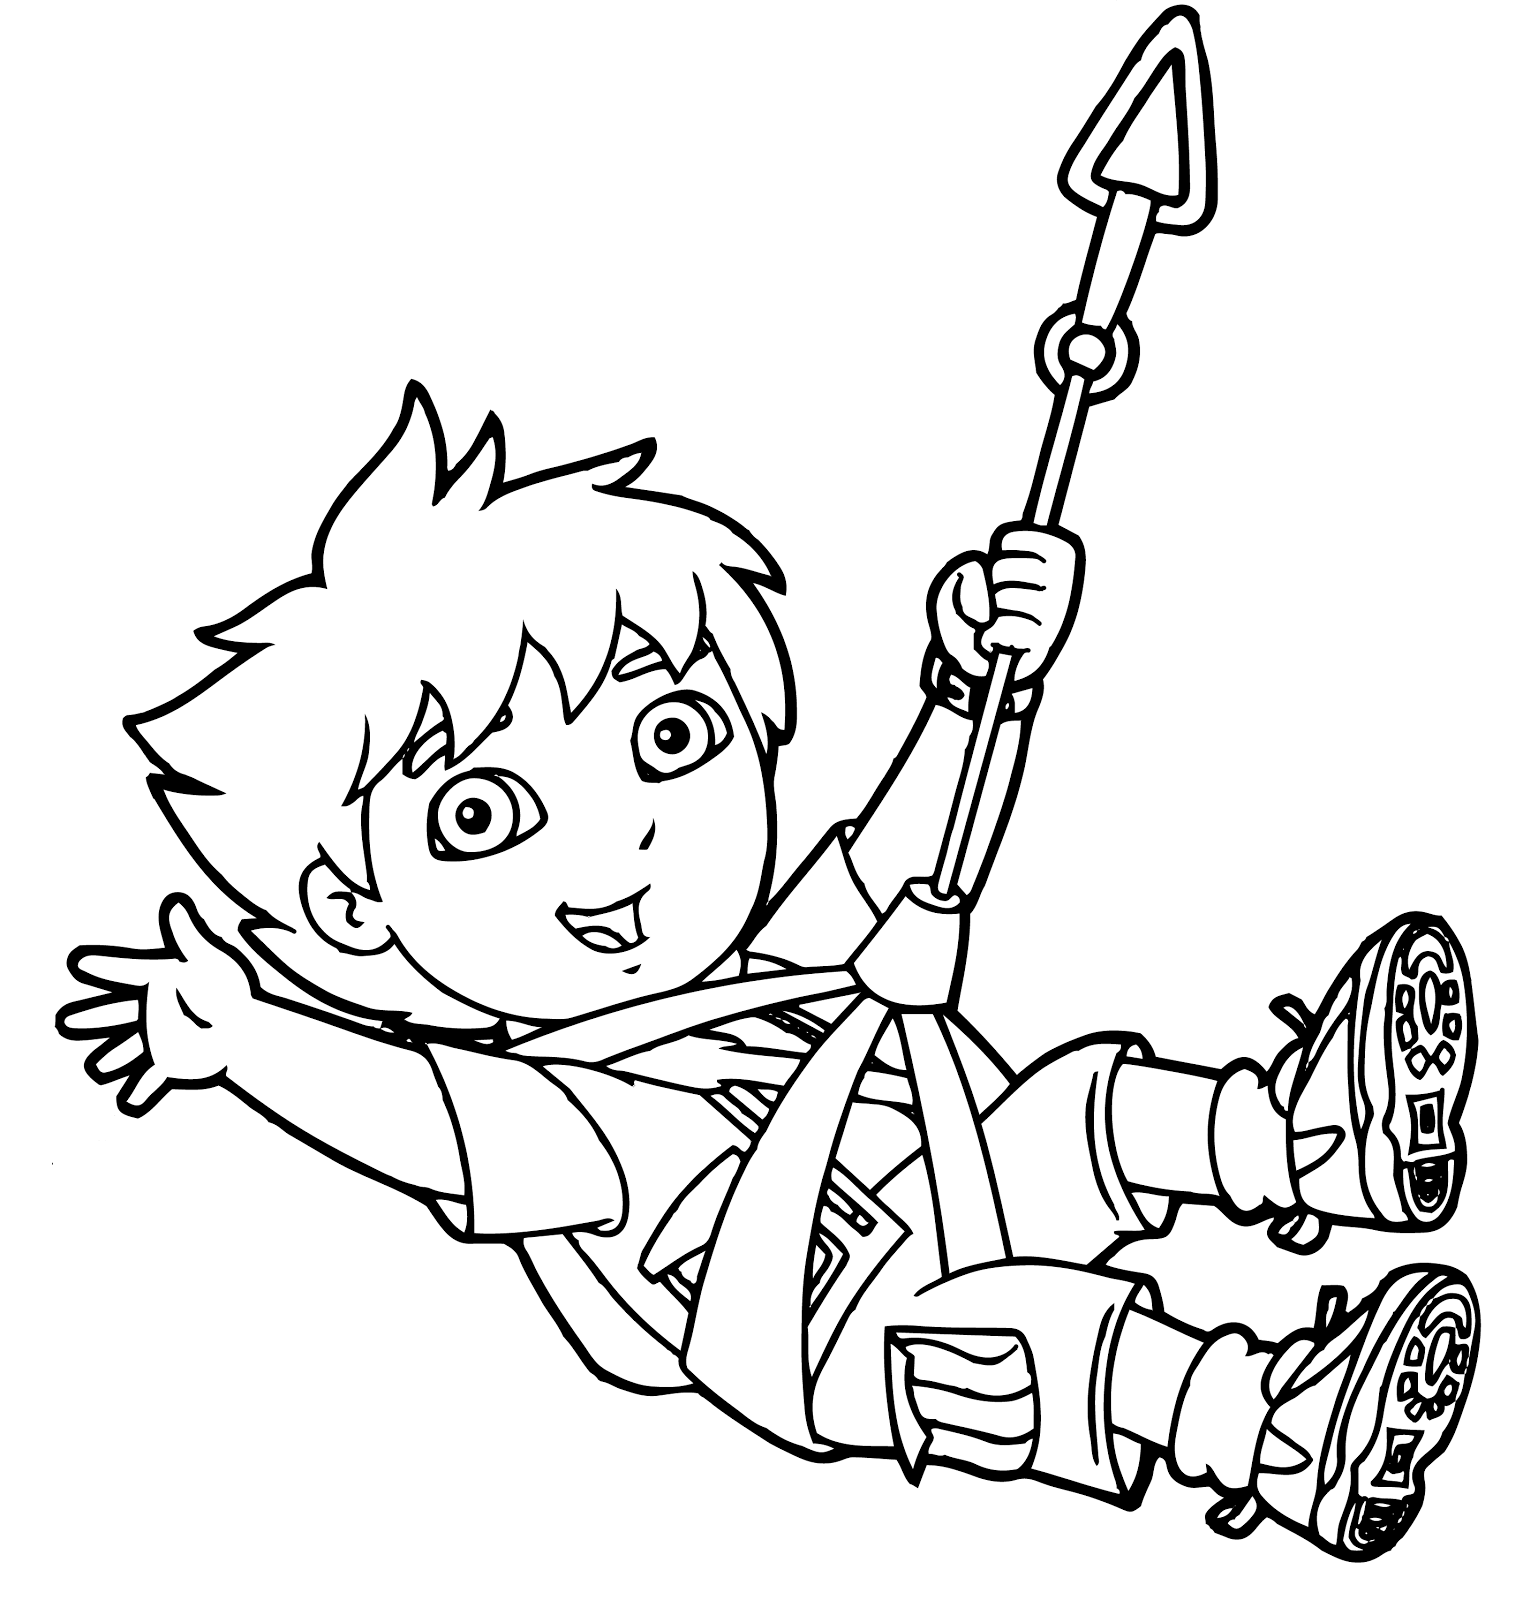 alicia diego coloring pages - photo#19